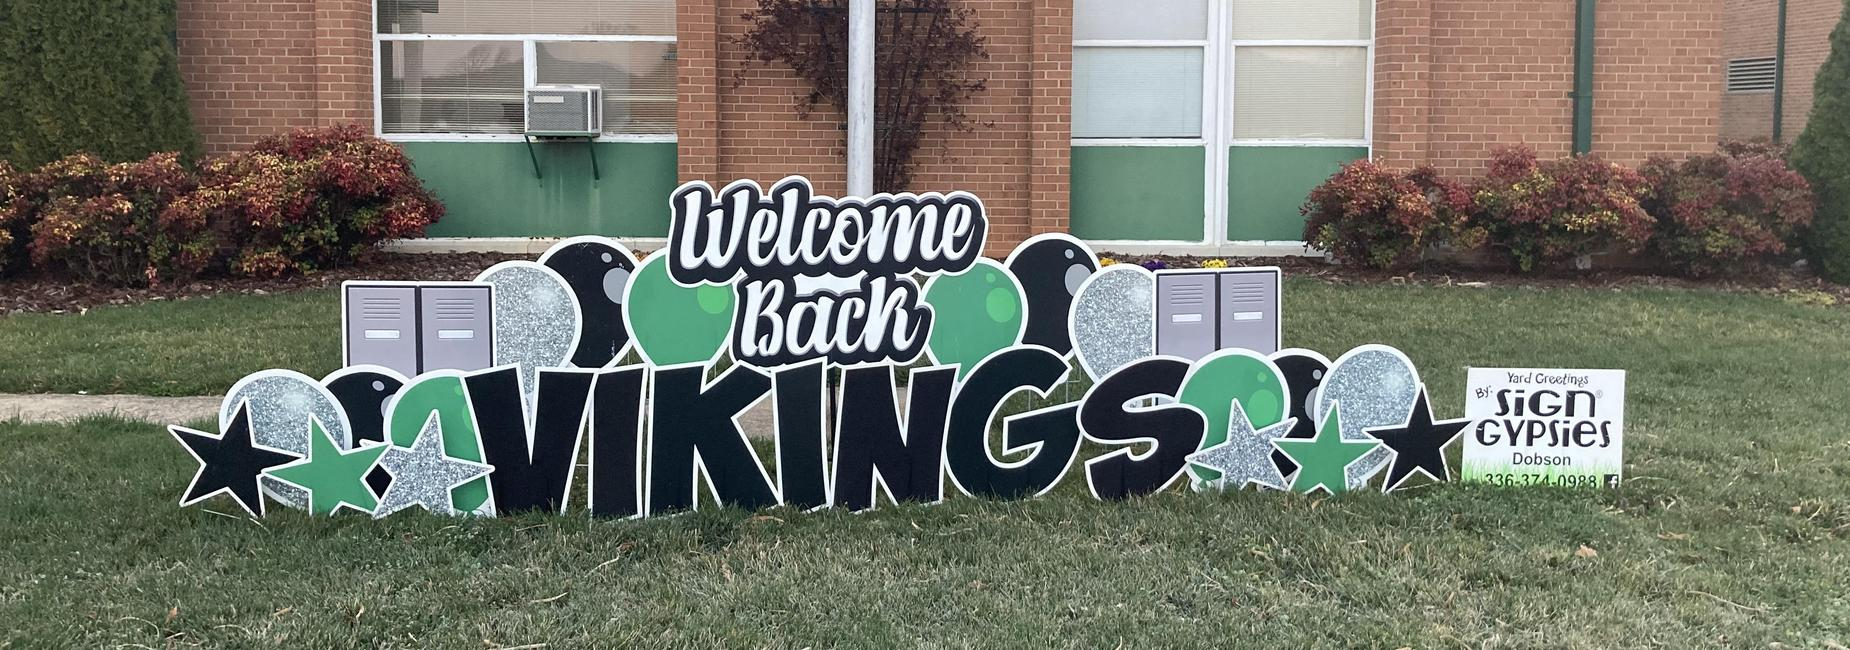 Welcome Back Vikings.